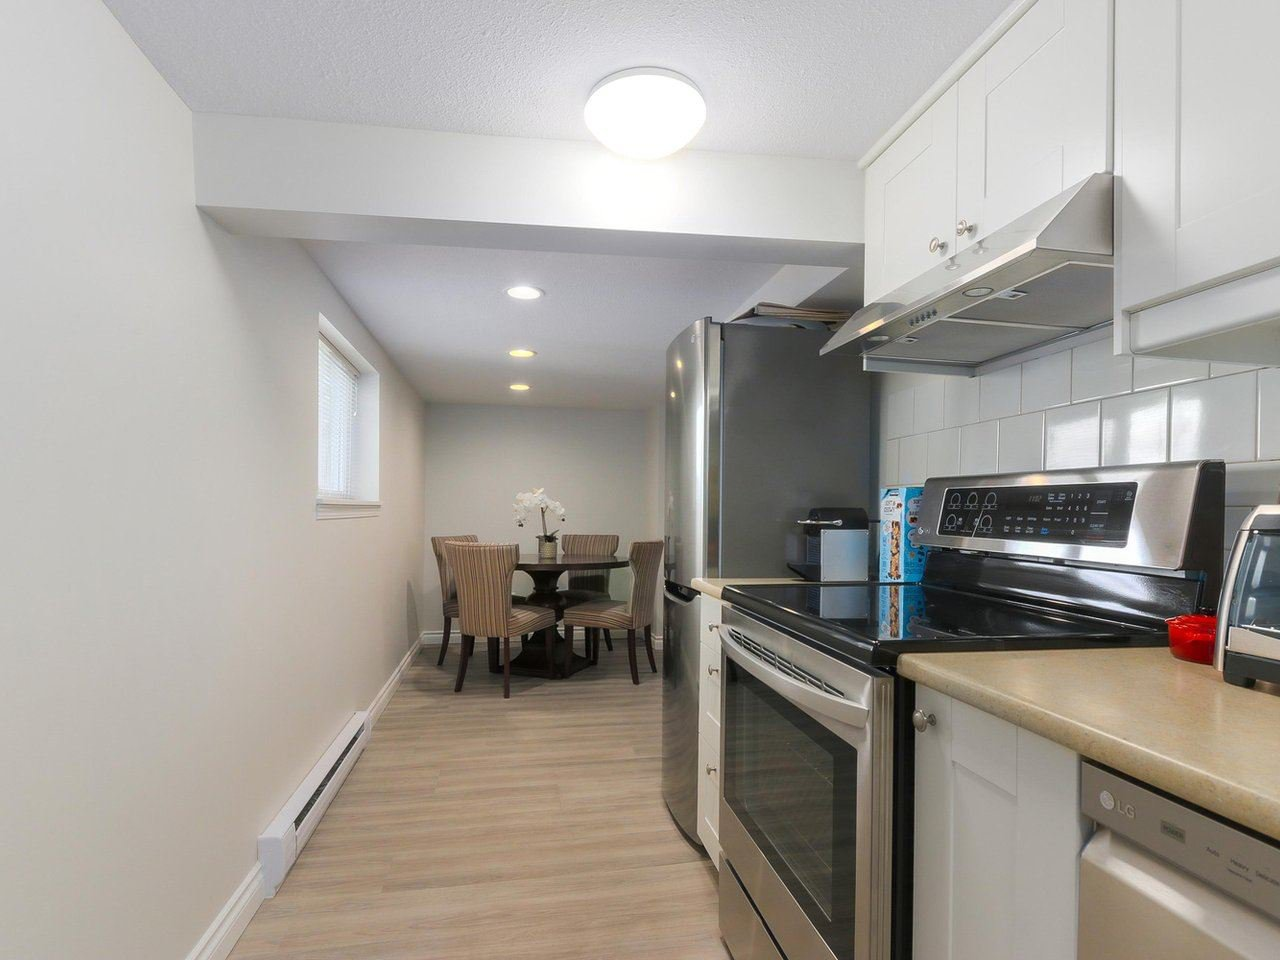 """Photo 18: Photos: 2610 W 10TH Avenue in Vancouver: Kitsilano House for sale in """"Kitsilano"""" (Vancouver West)  : MLS®# R2471992"""